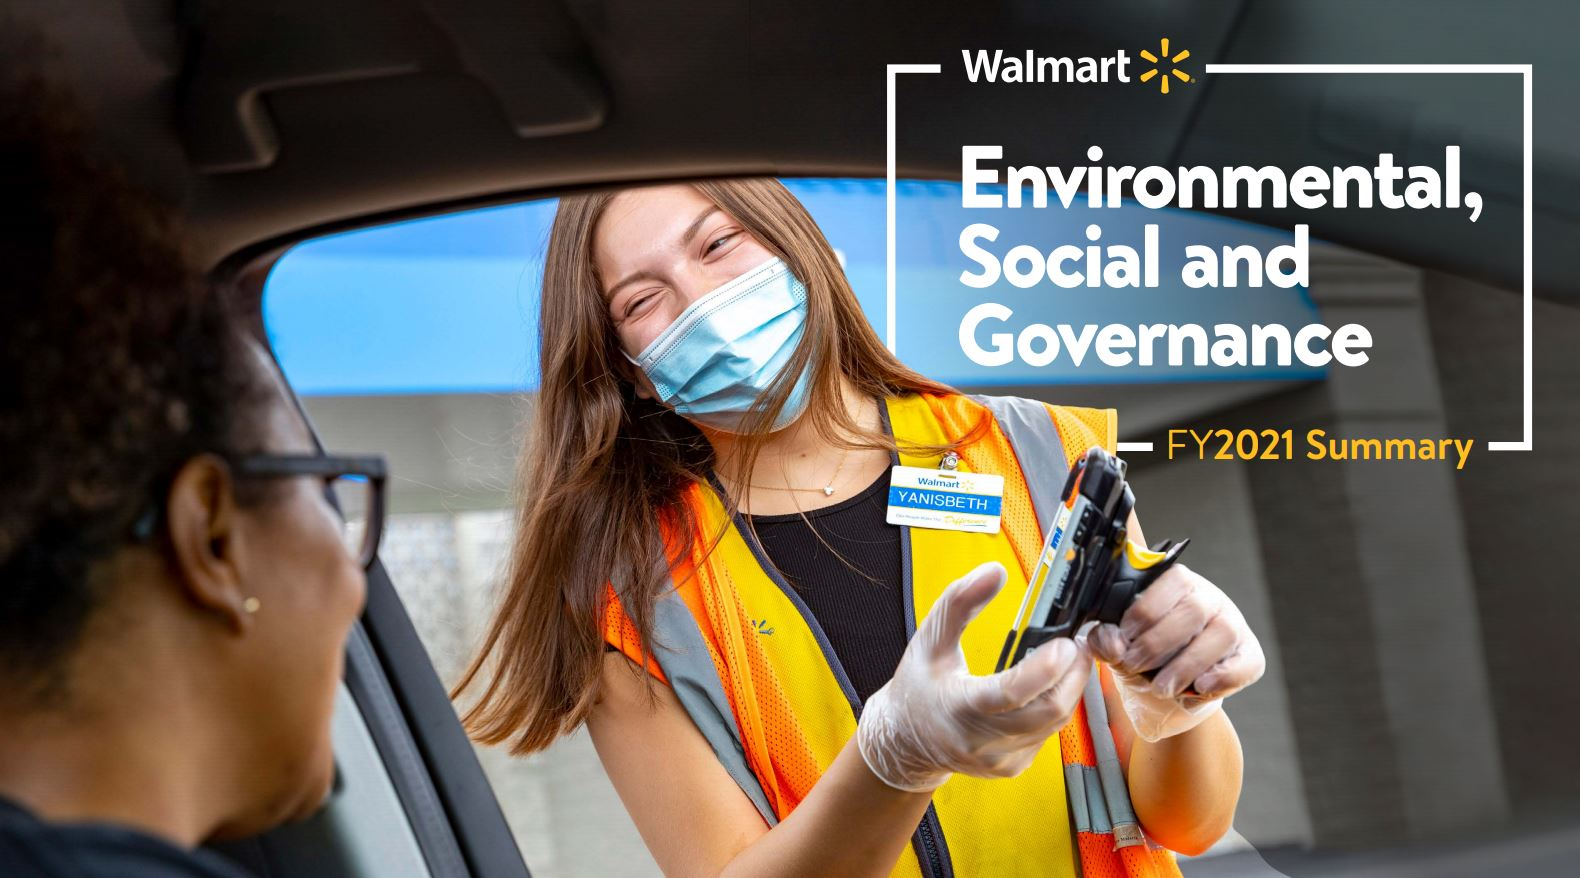 Masked Walmart employee rings up curbside pickup customer from their car. Image reads: Walmart - Environmental, Social and Governance FY2021 Summary